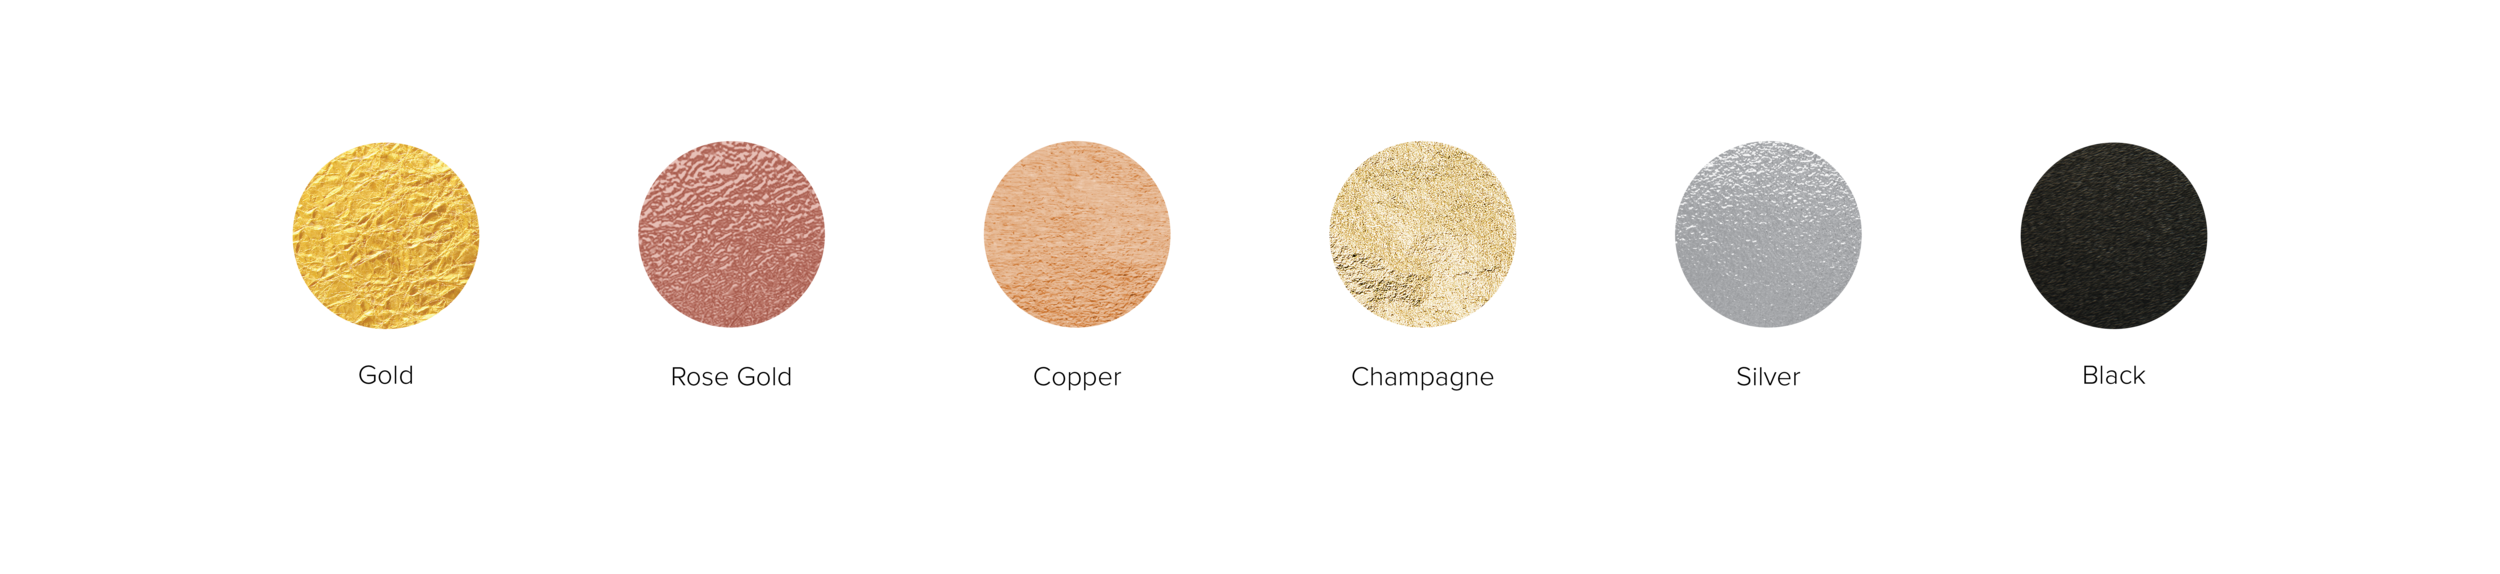 foil colors-03-03.png